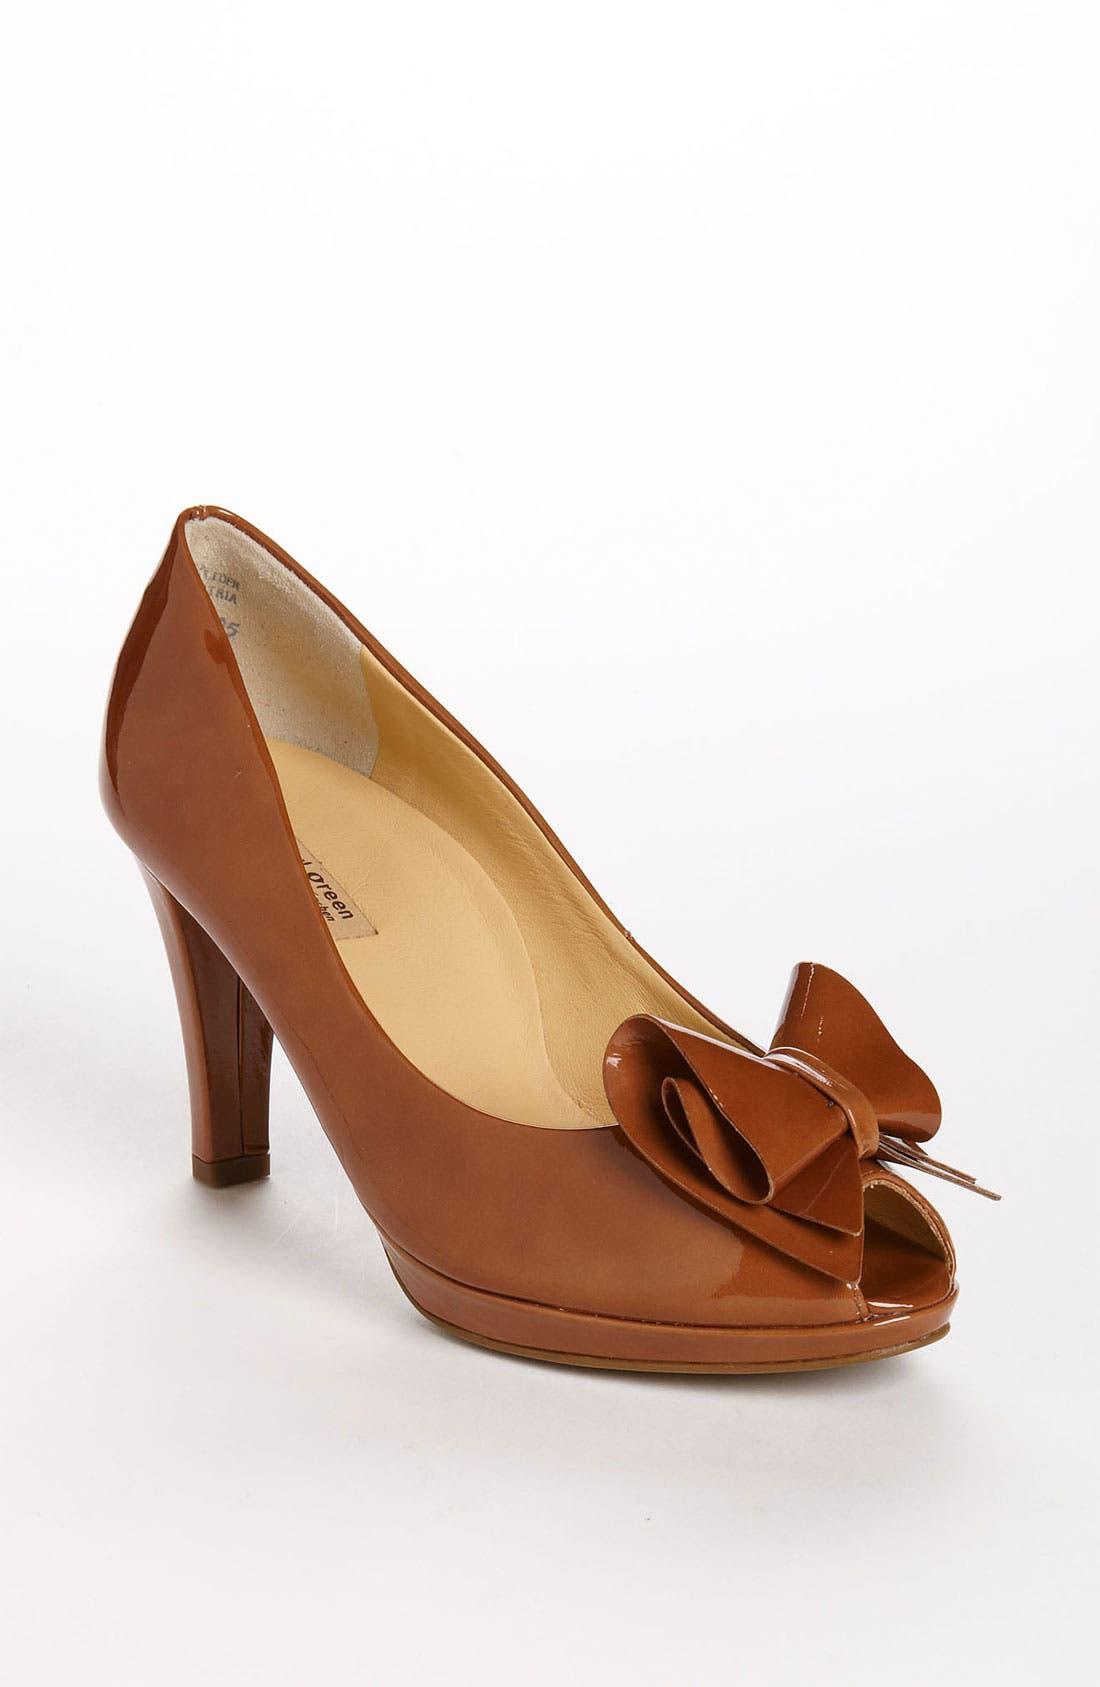 Main Image - Paul Green 'Nadia' Pump